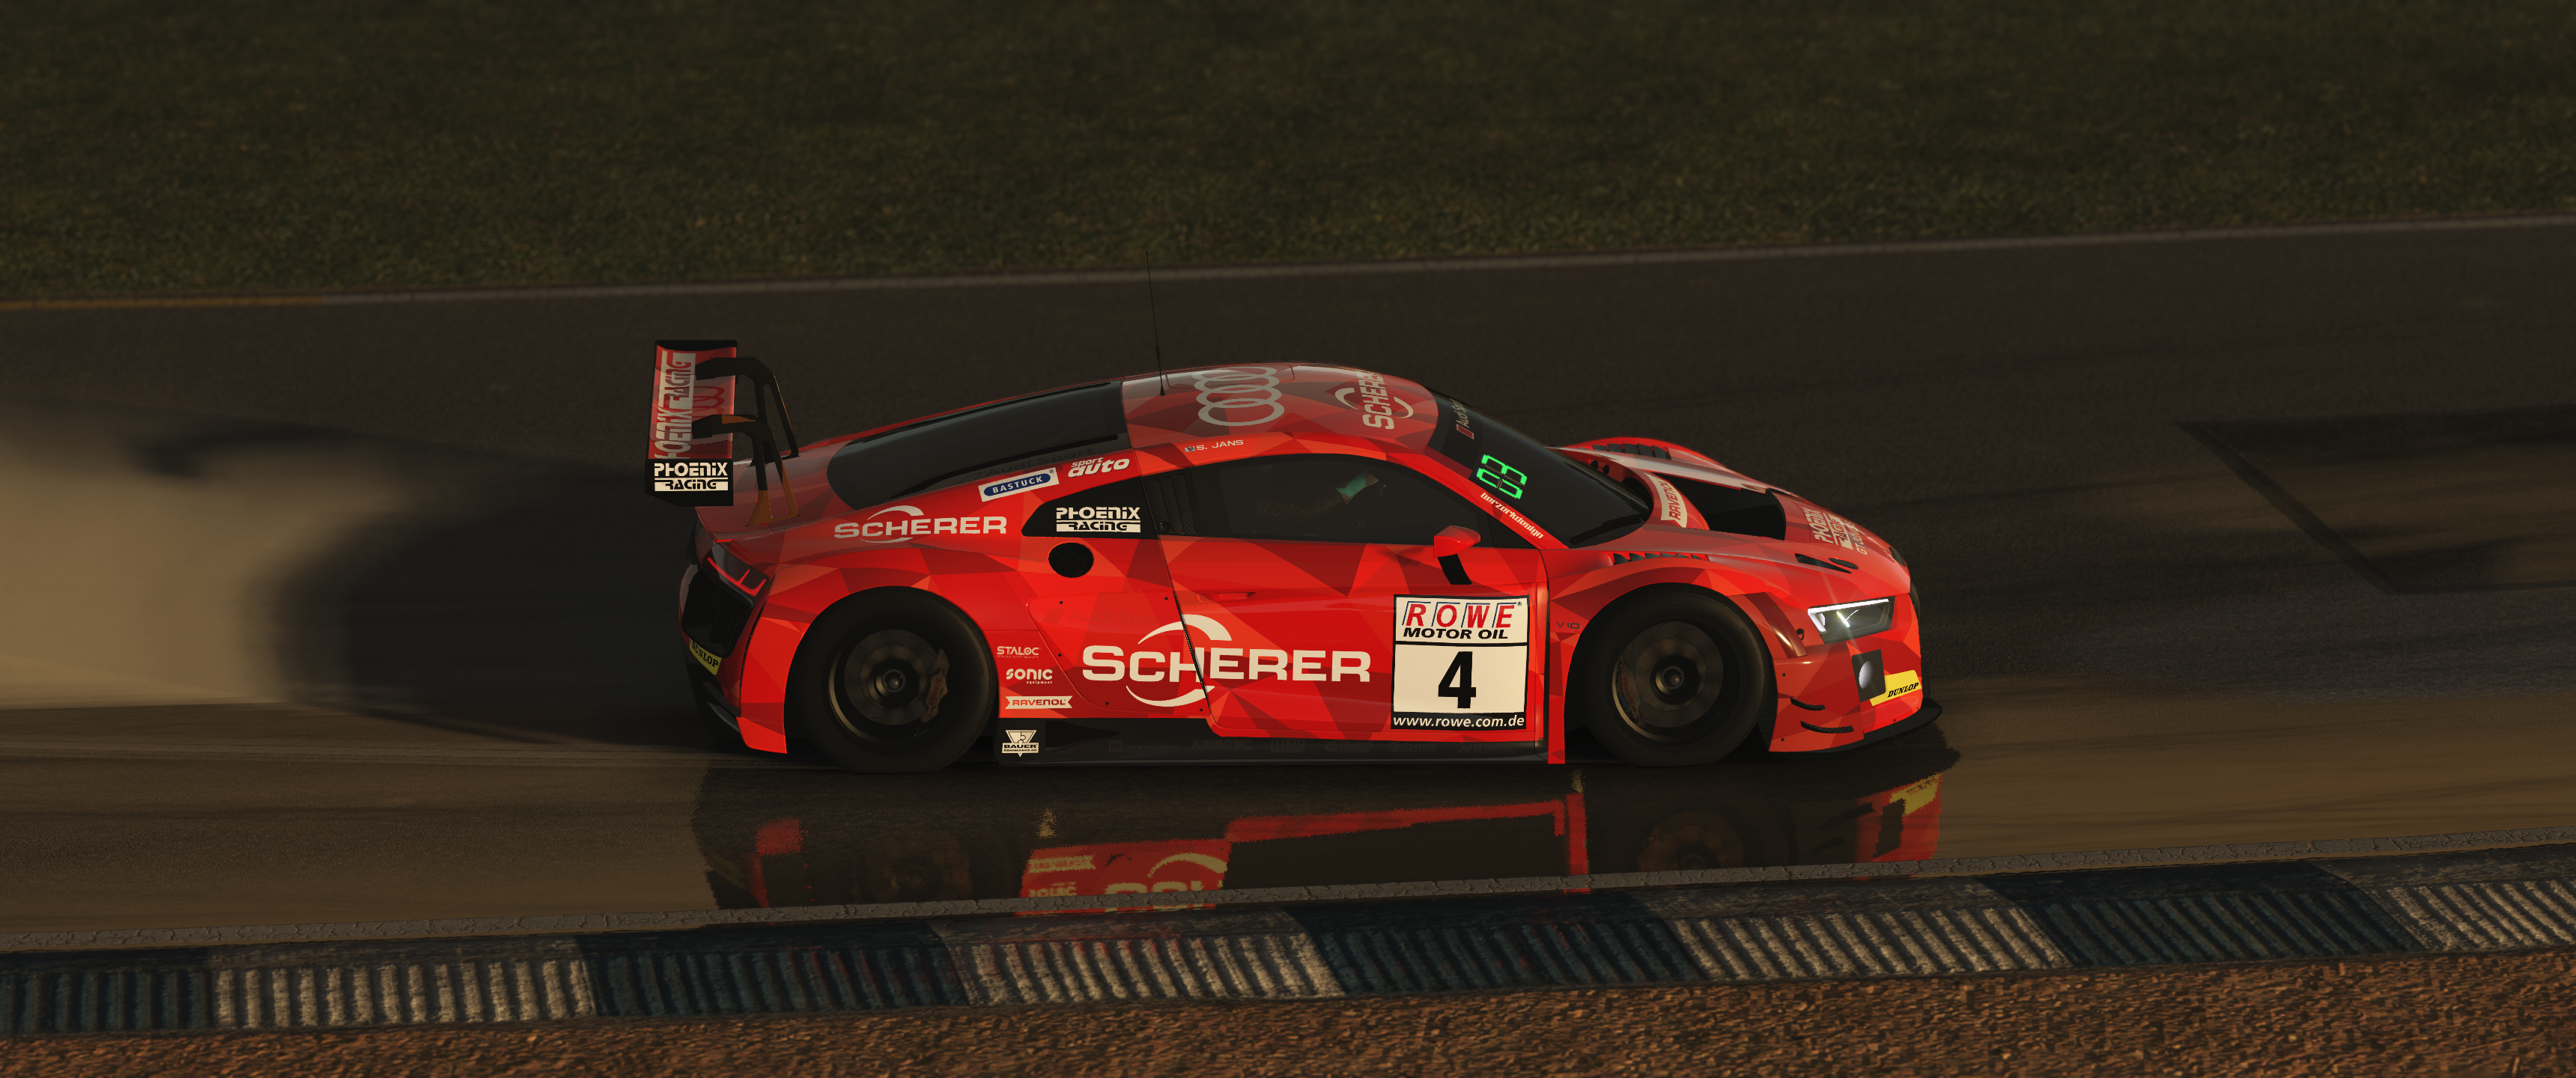 rFactor2 2019-02-10 20-00-30-62.png